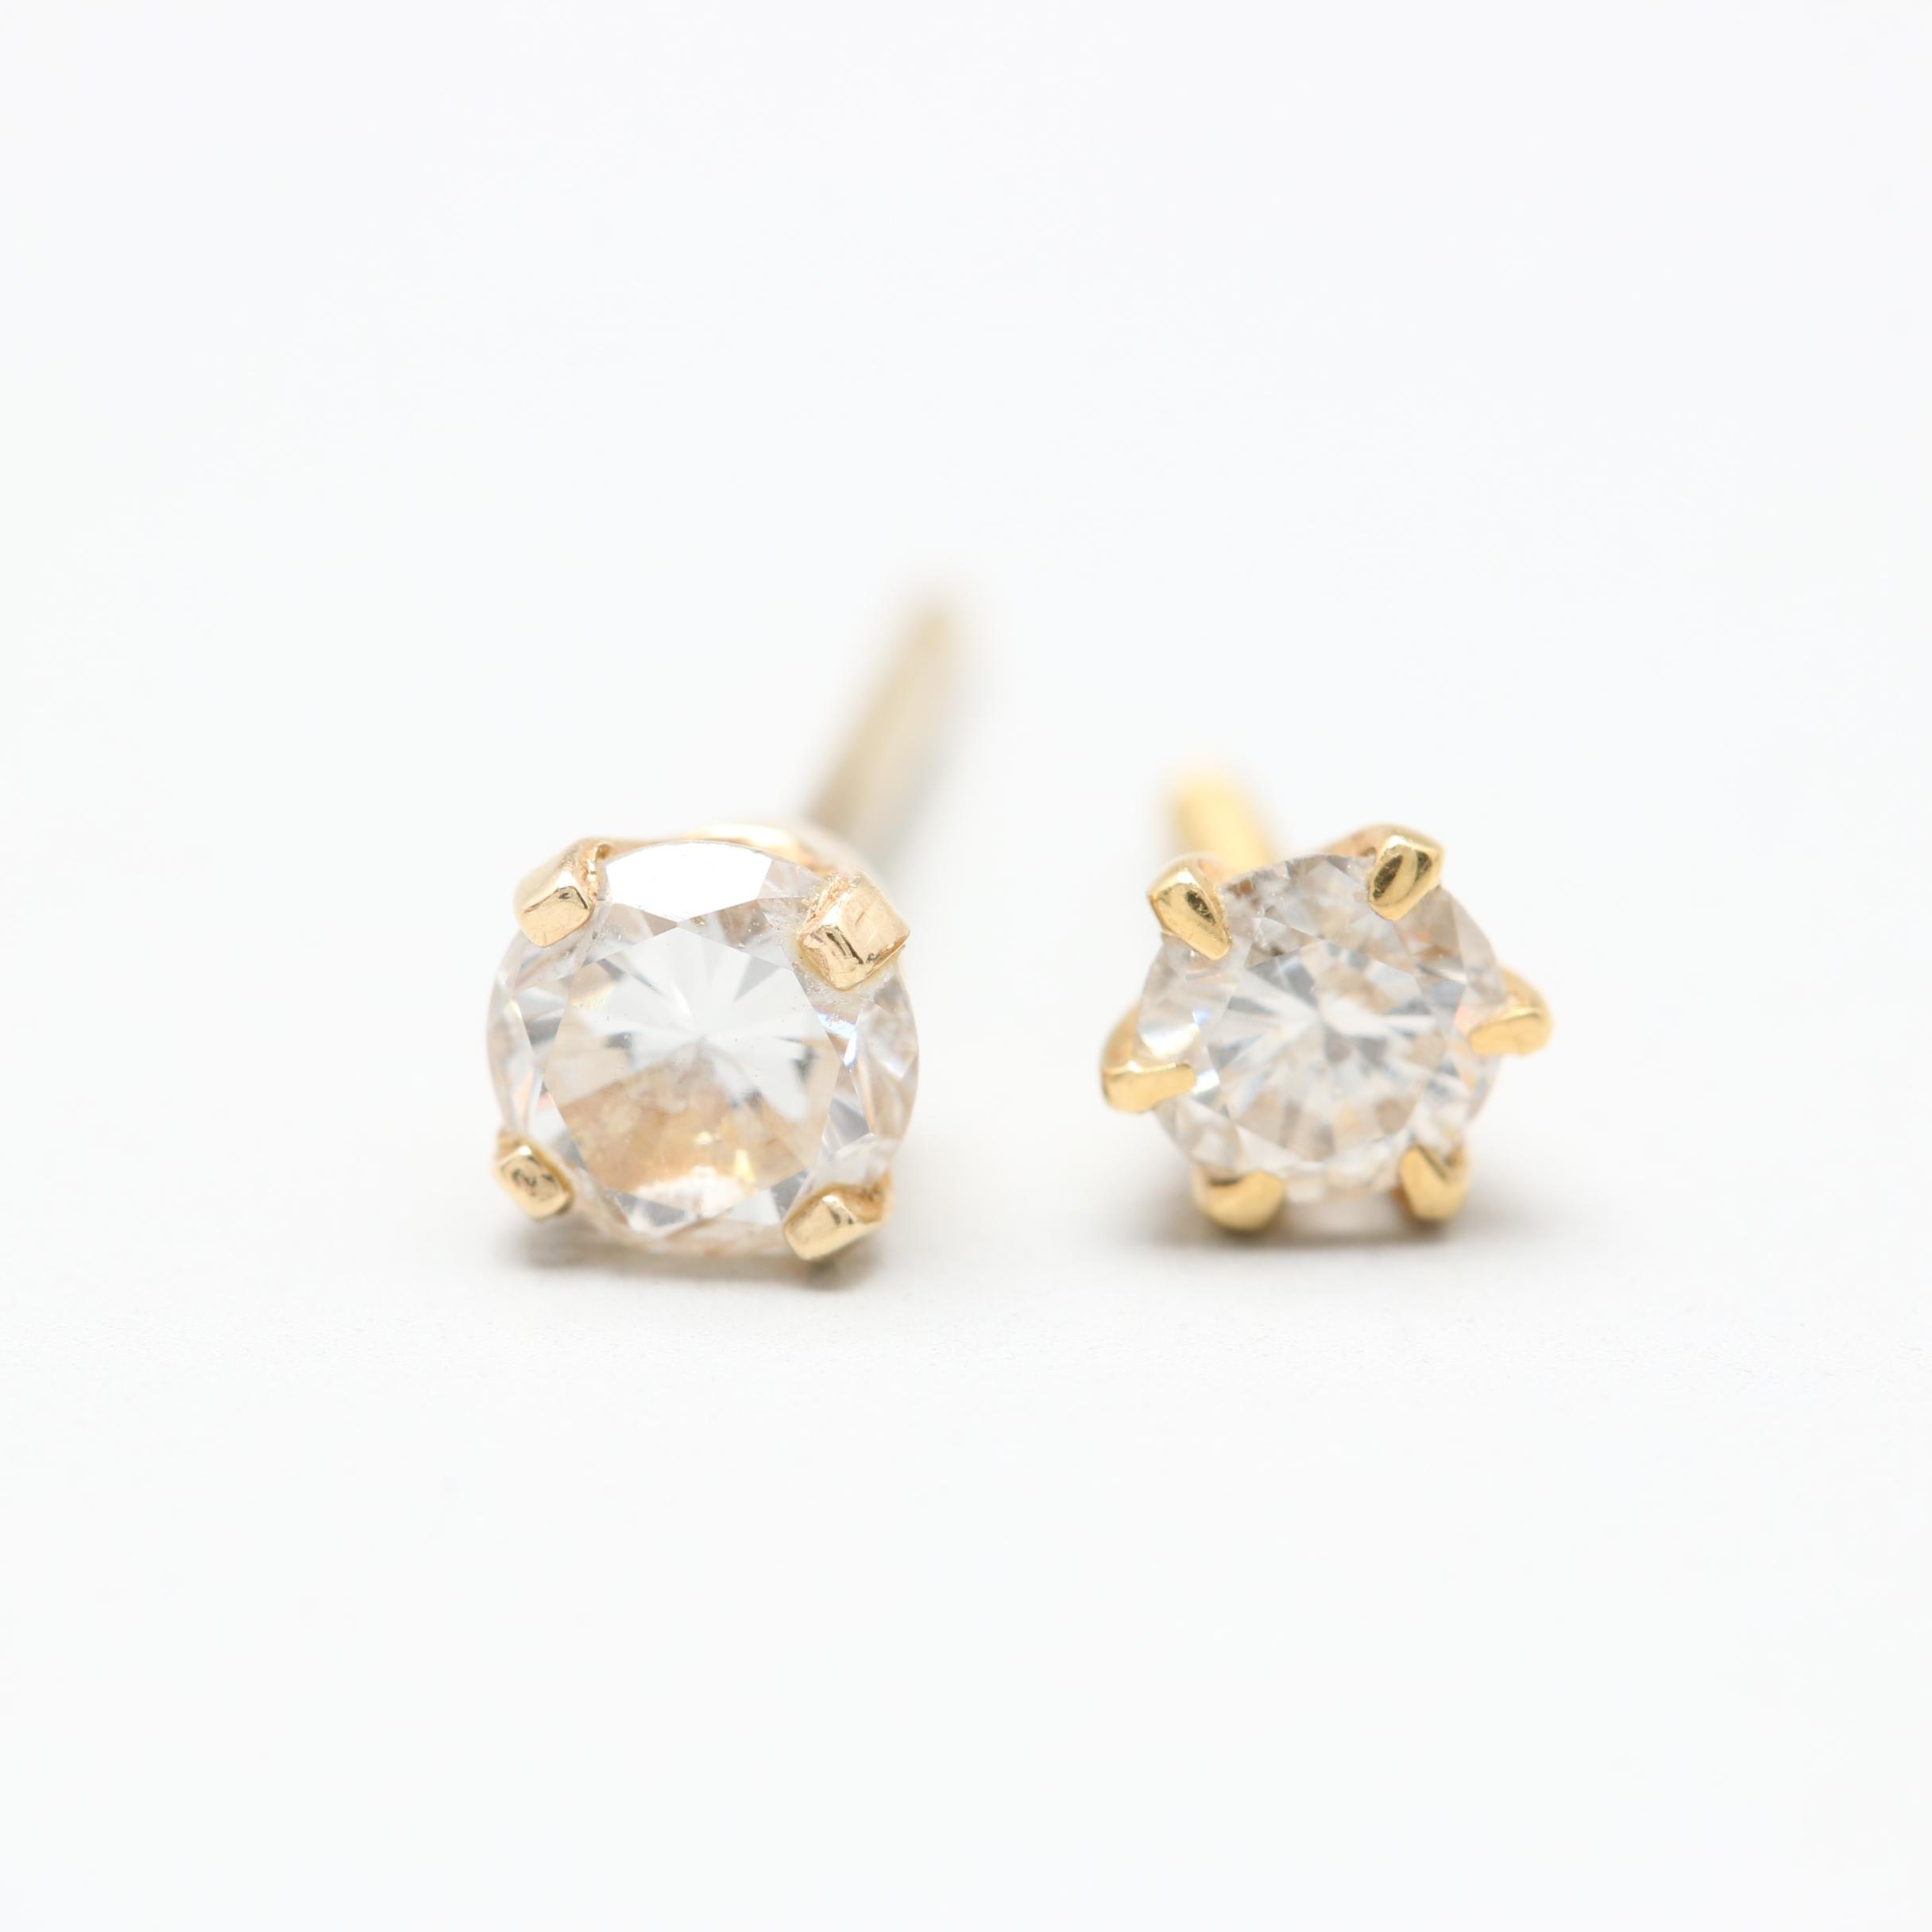 14K and 18K Yellow Gold Diamond Stud Earrings